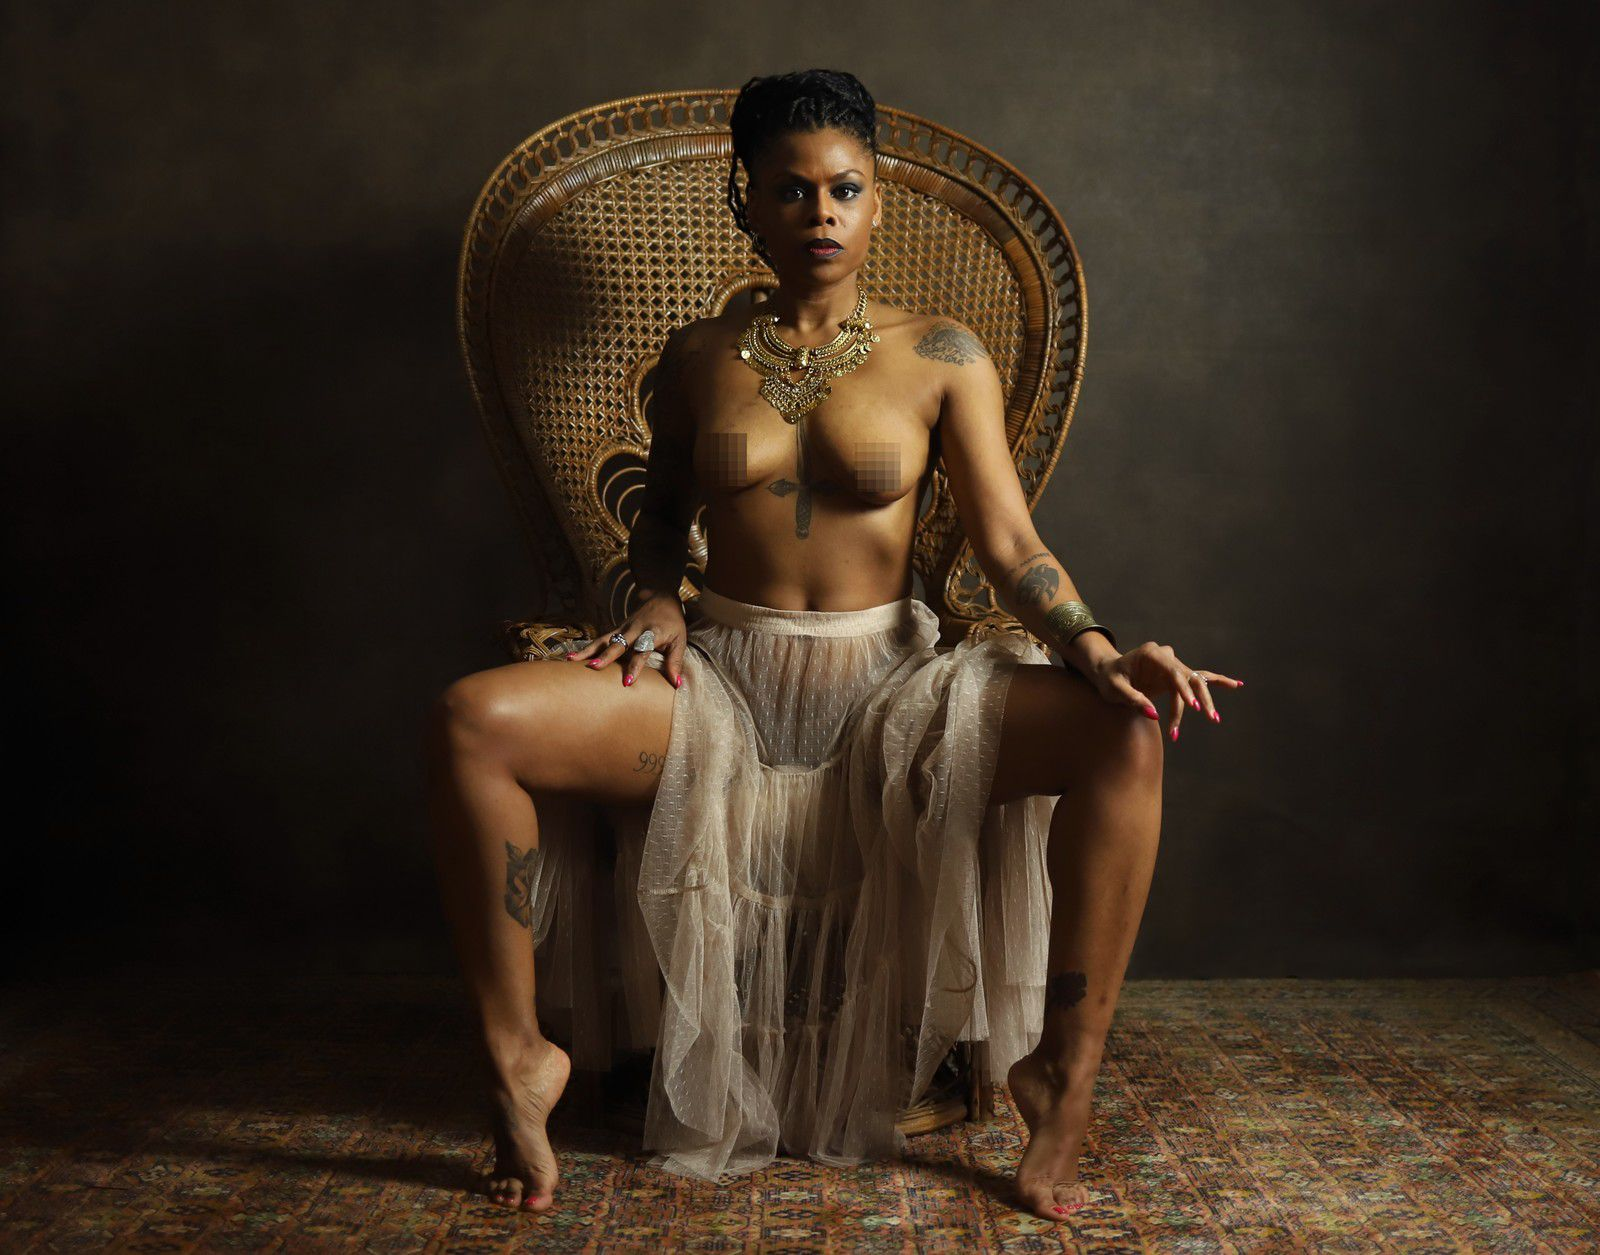 Model / Photography / French / Nude Art / Inked / Melanin / Women / Black woman / Be Barock / Bebabrock